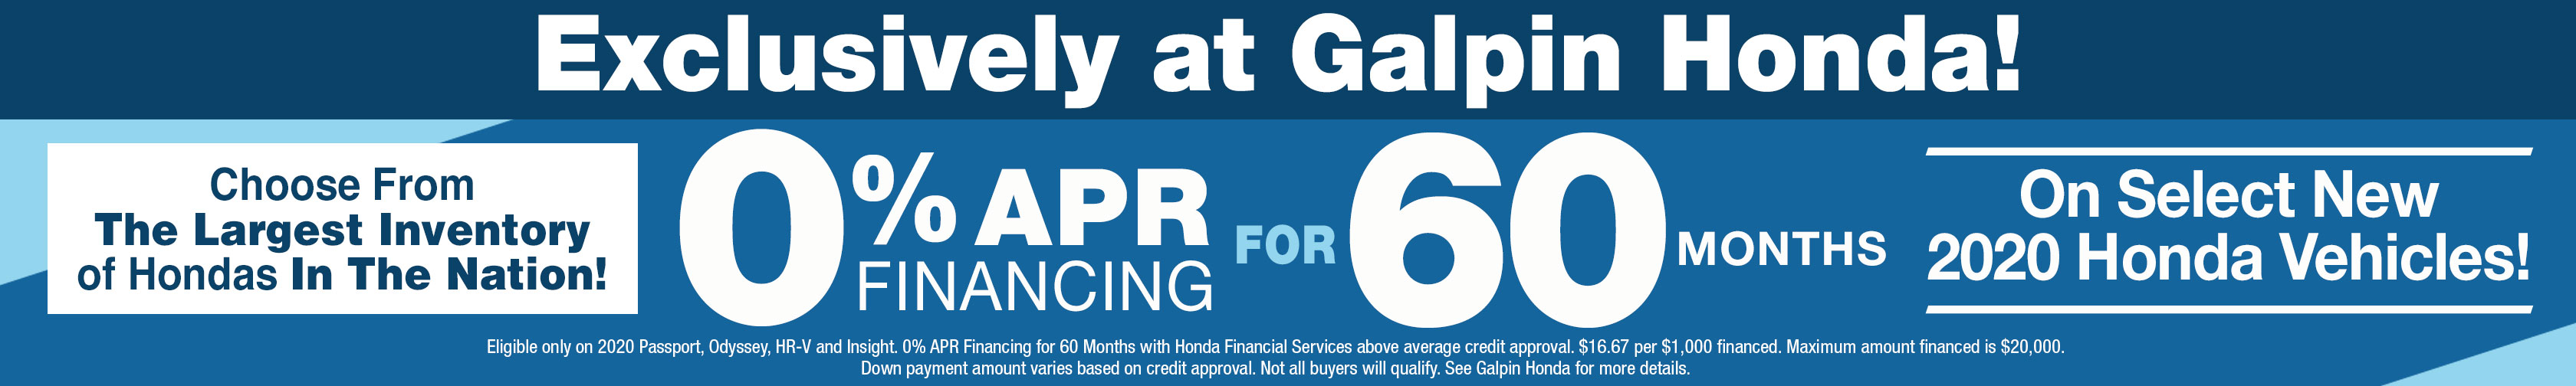 Galpin Honda Sales Event